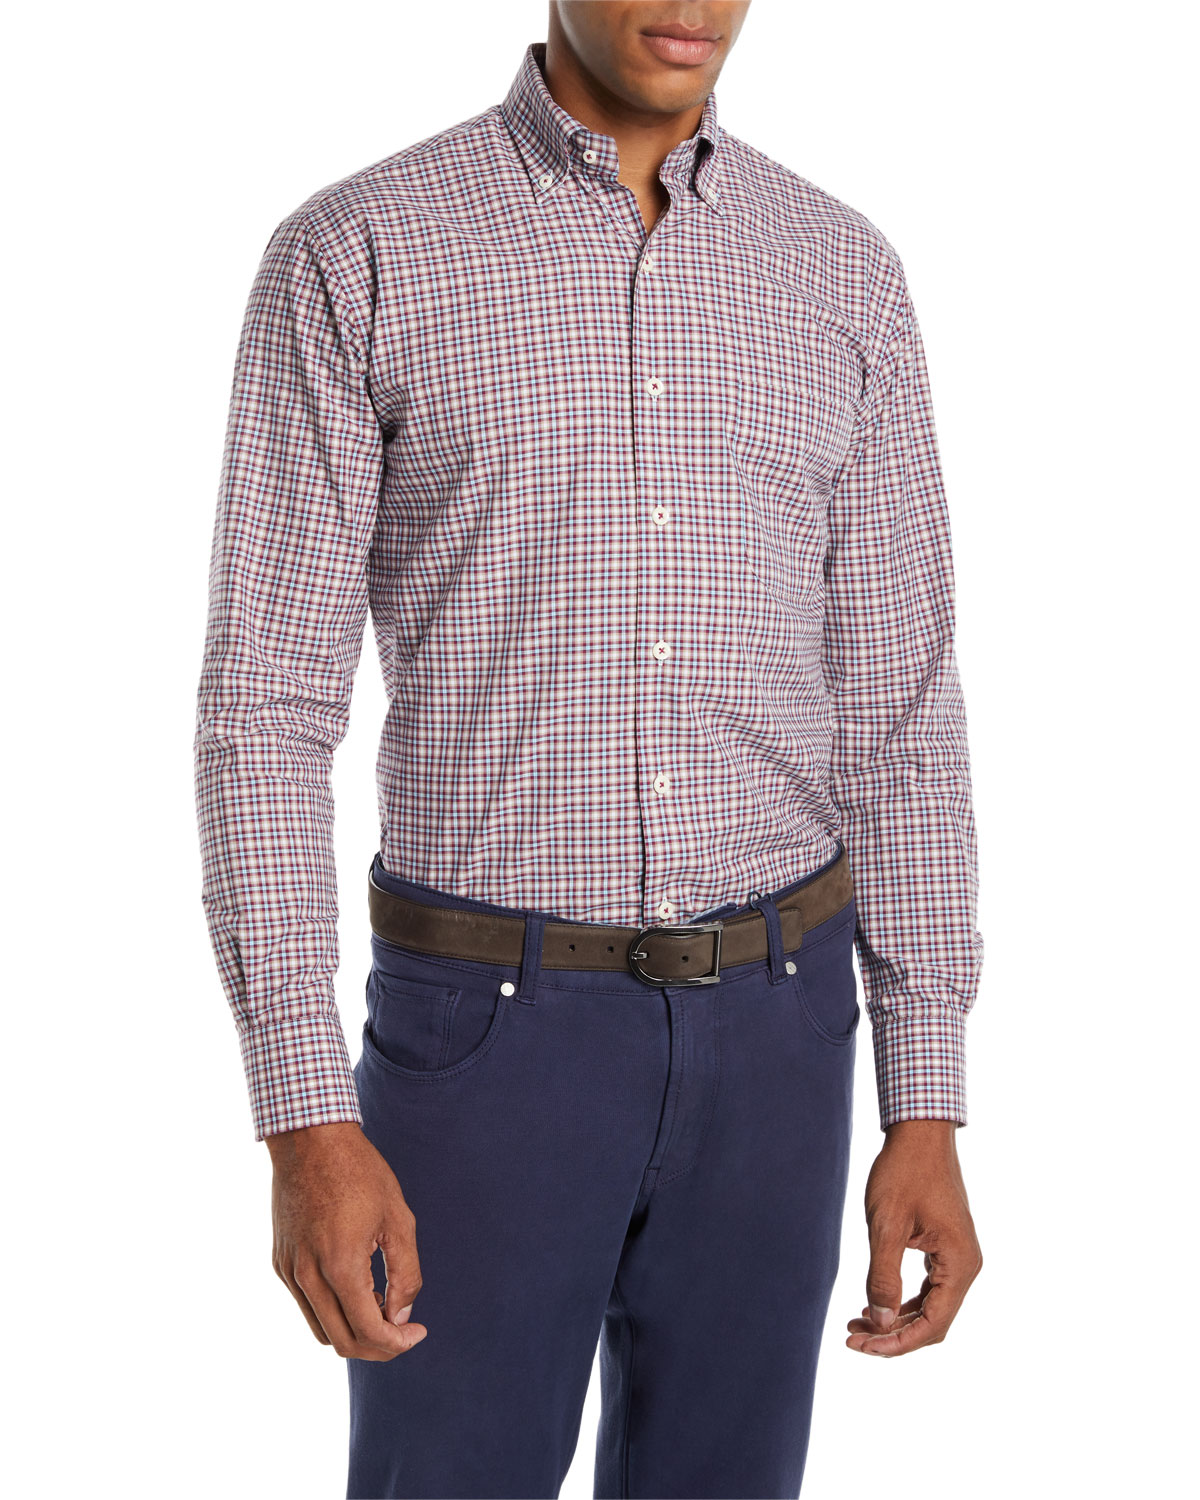 Men's Albertville Check Sport Shirt